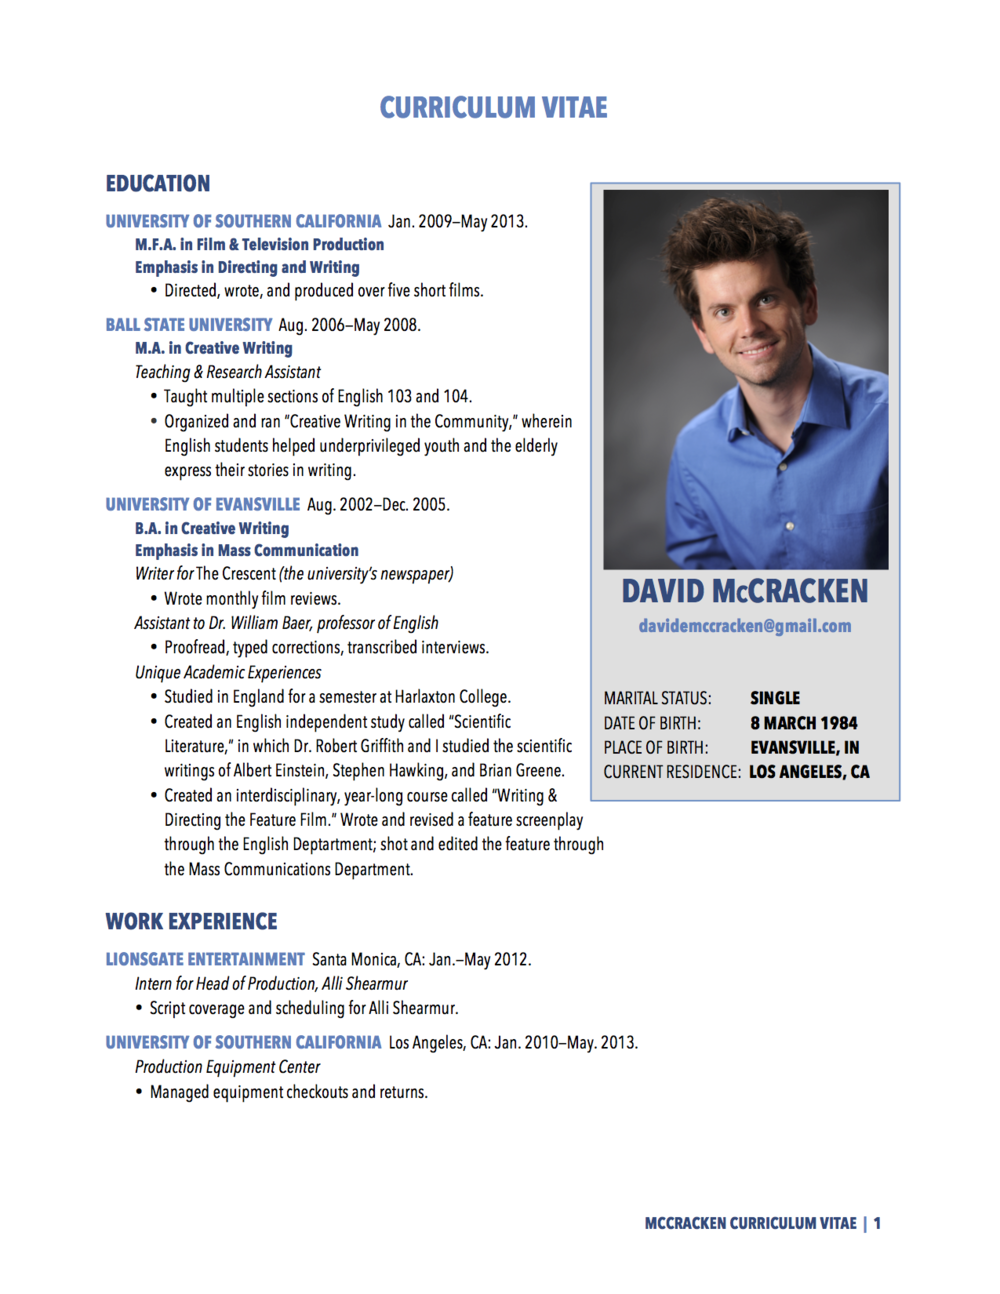 curriculum vitae david mccracken curriculum vitae pdf davidmccracken c v 01 03 2014 for website pg1 png